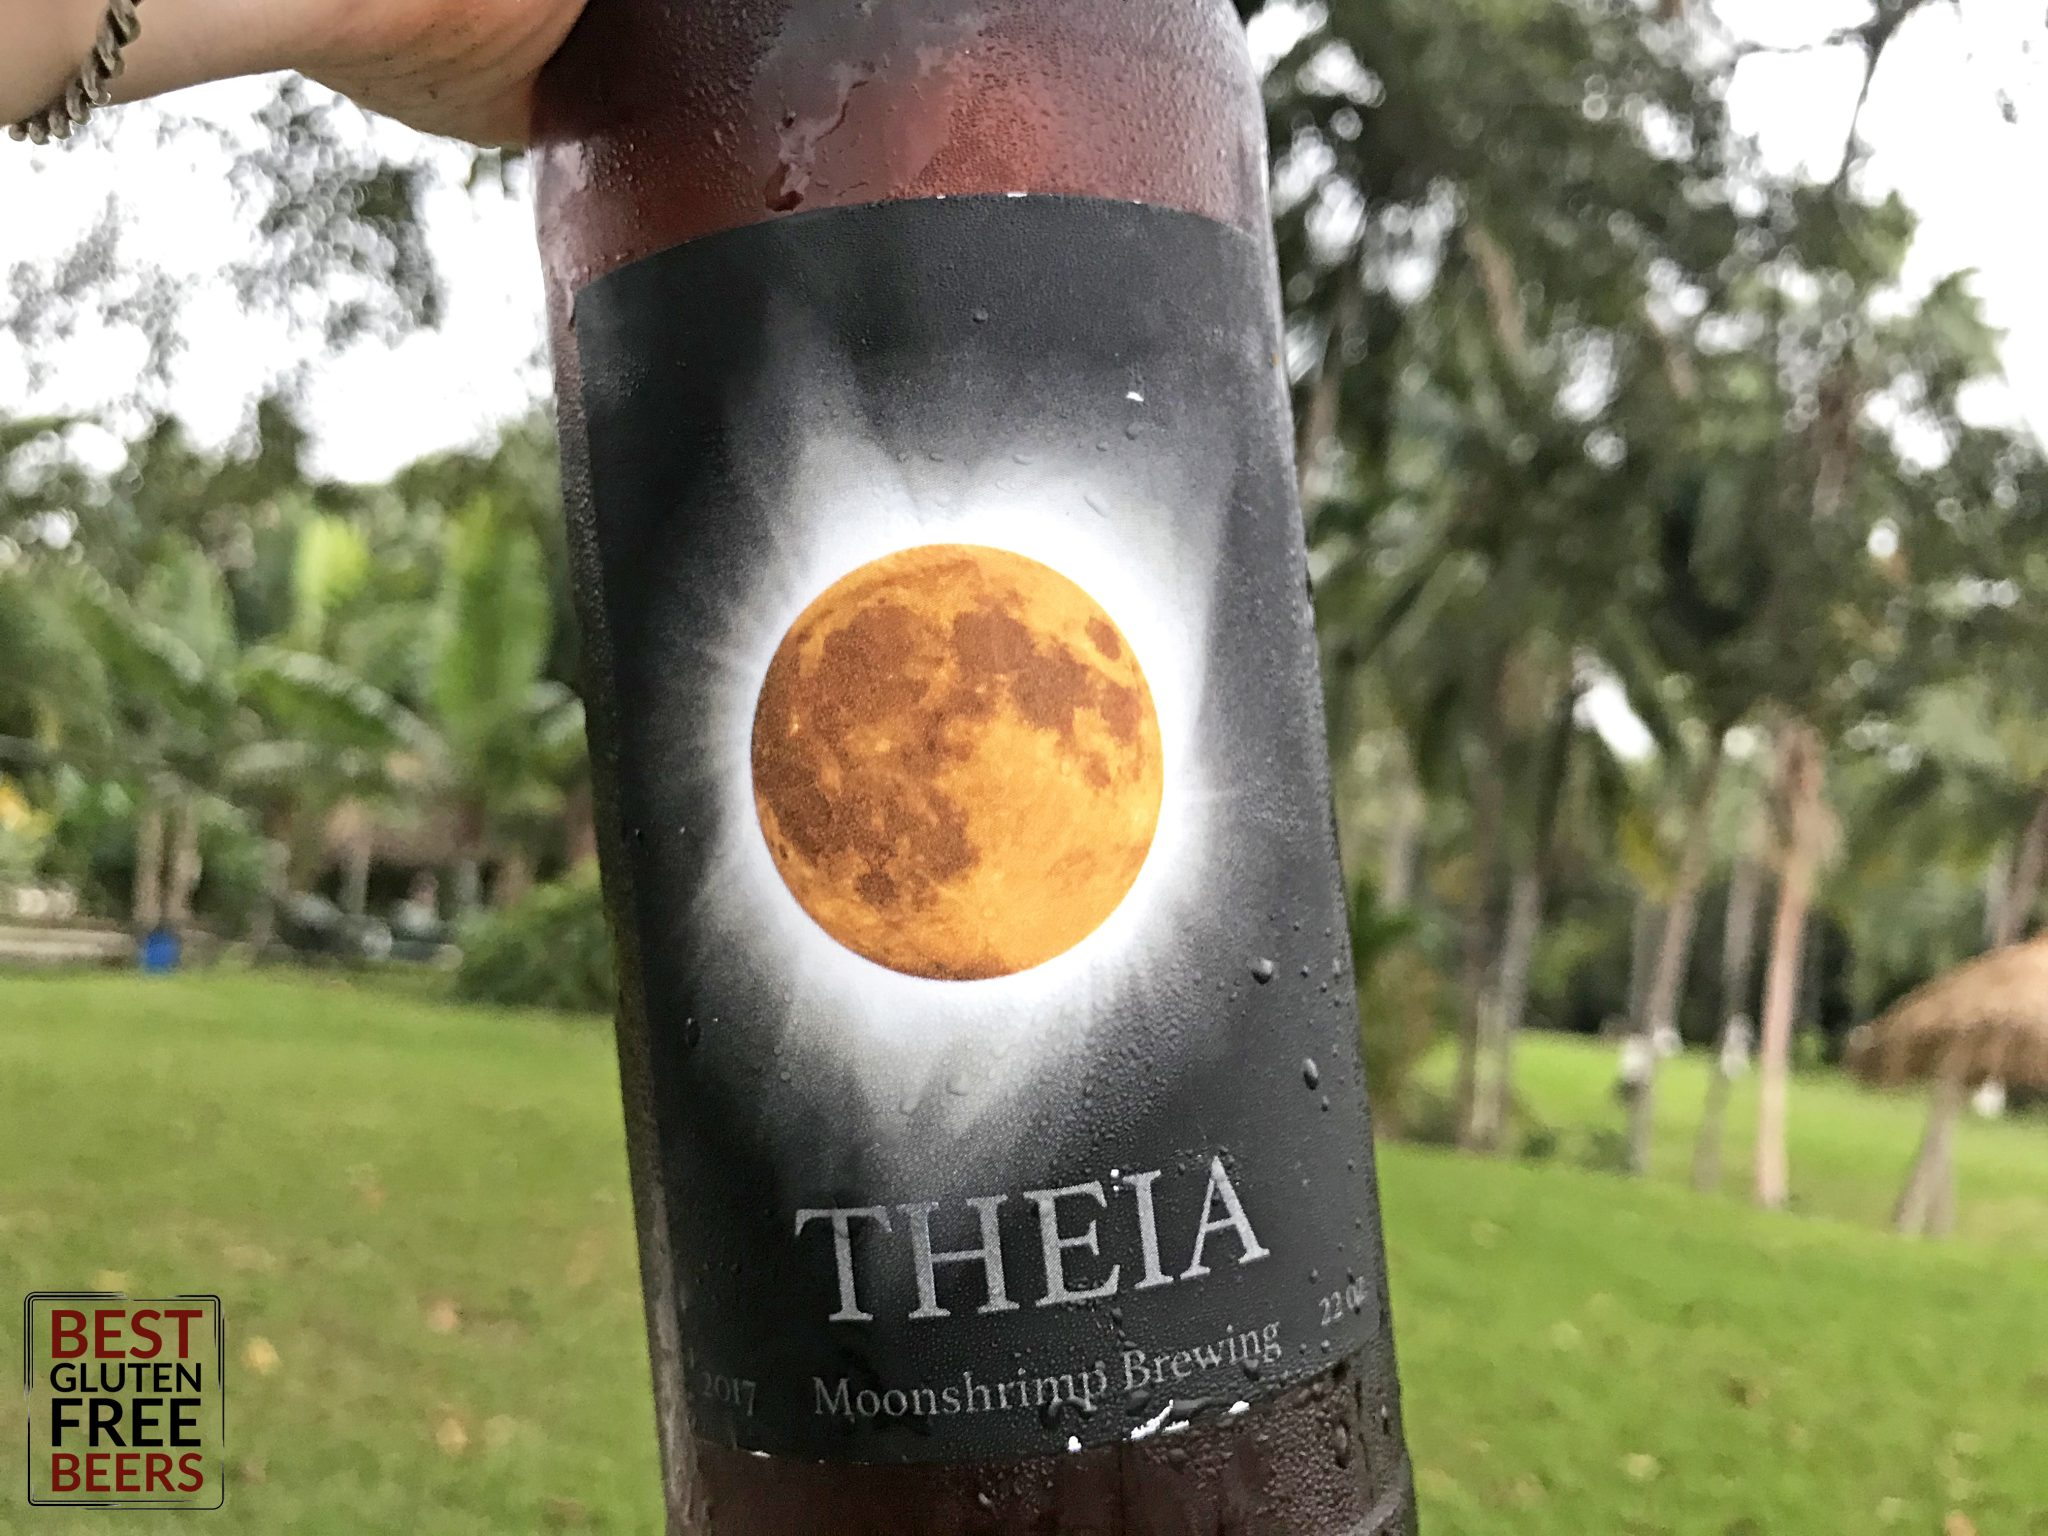 Solar Eclipse Theia Ale Wine Brewed by Moonshrimp Brewing